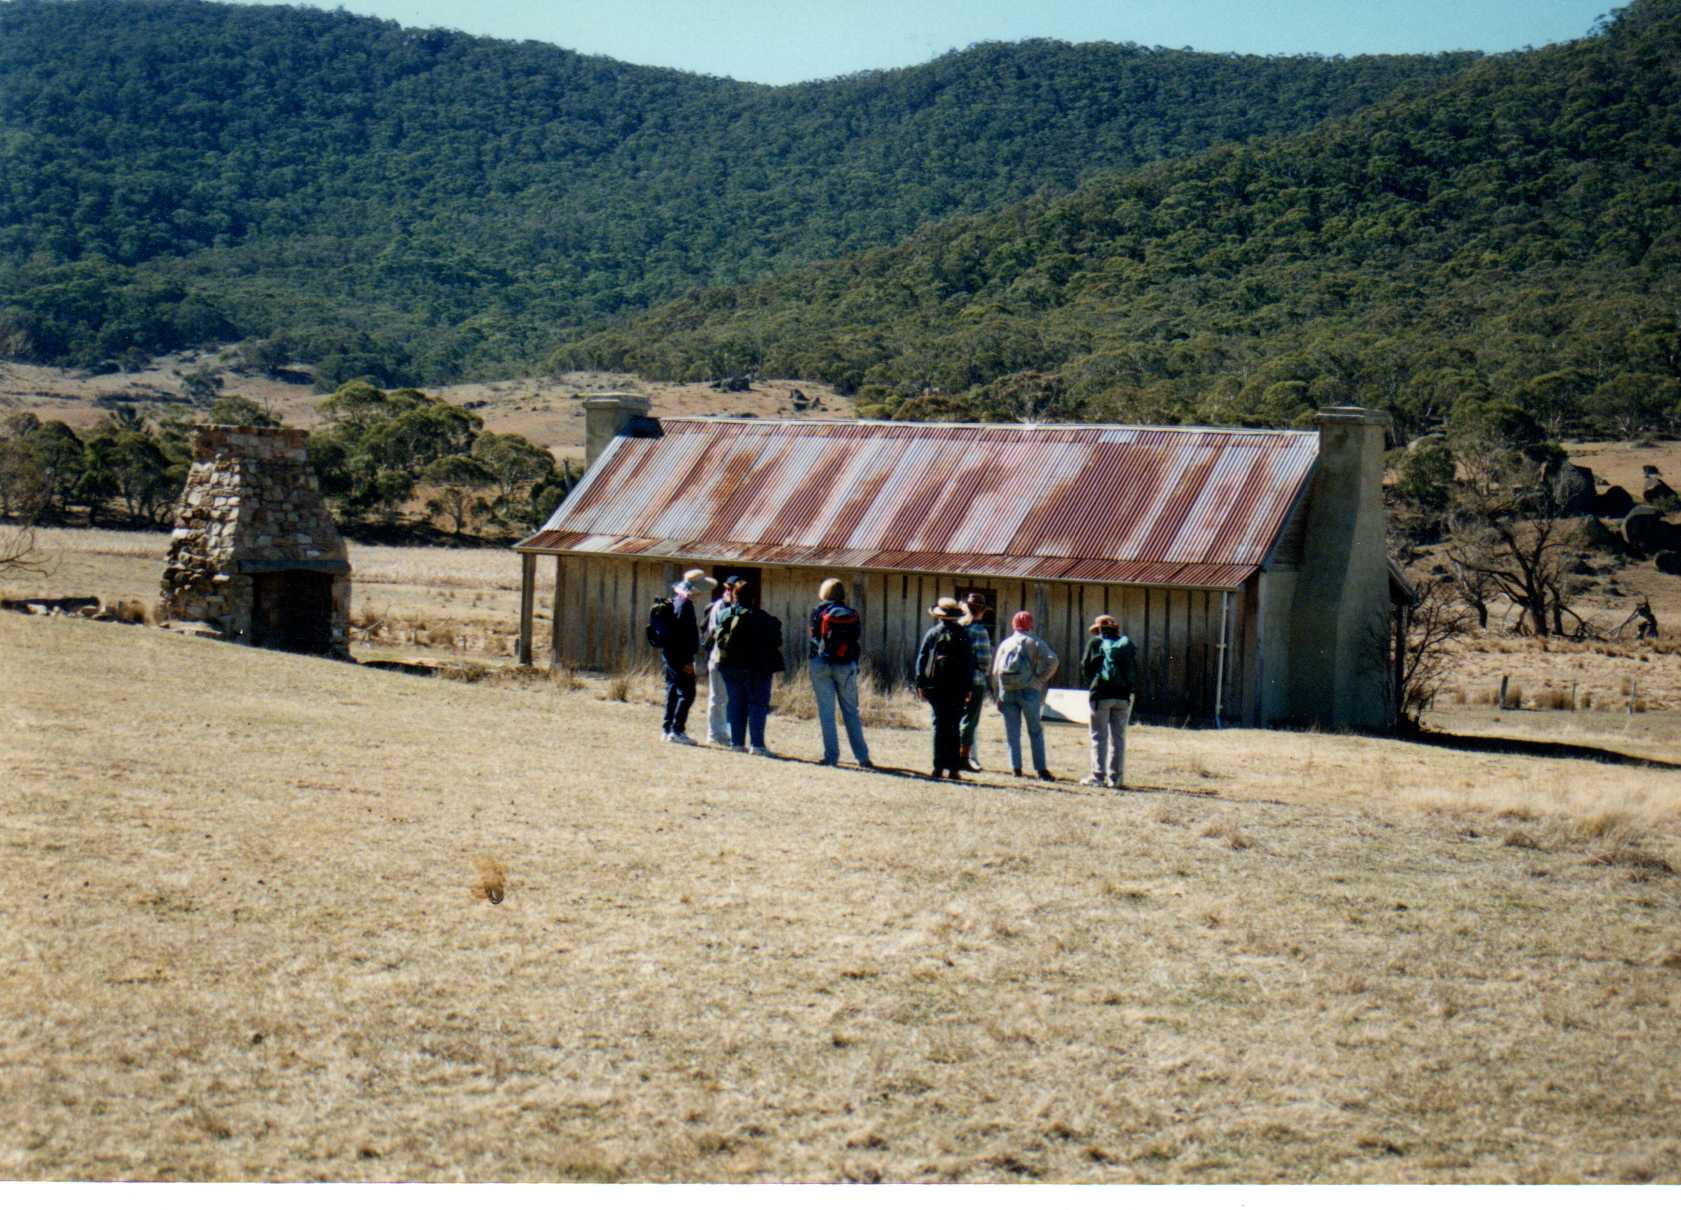 A walk through history in the Orroral Valley